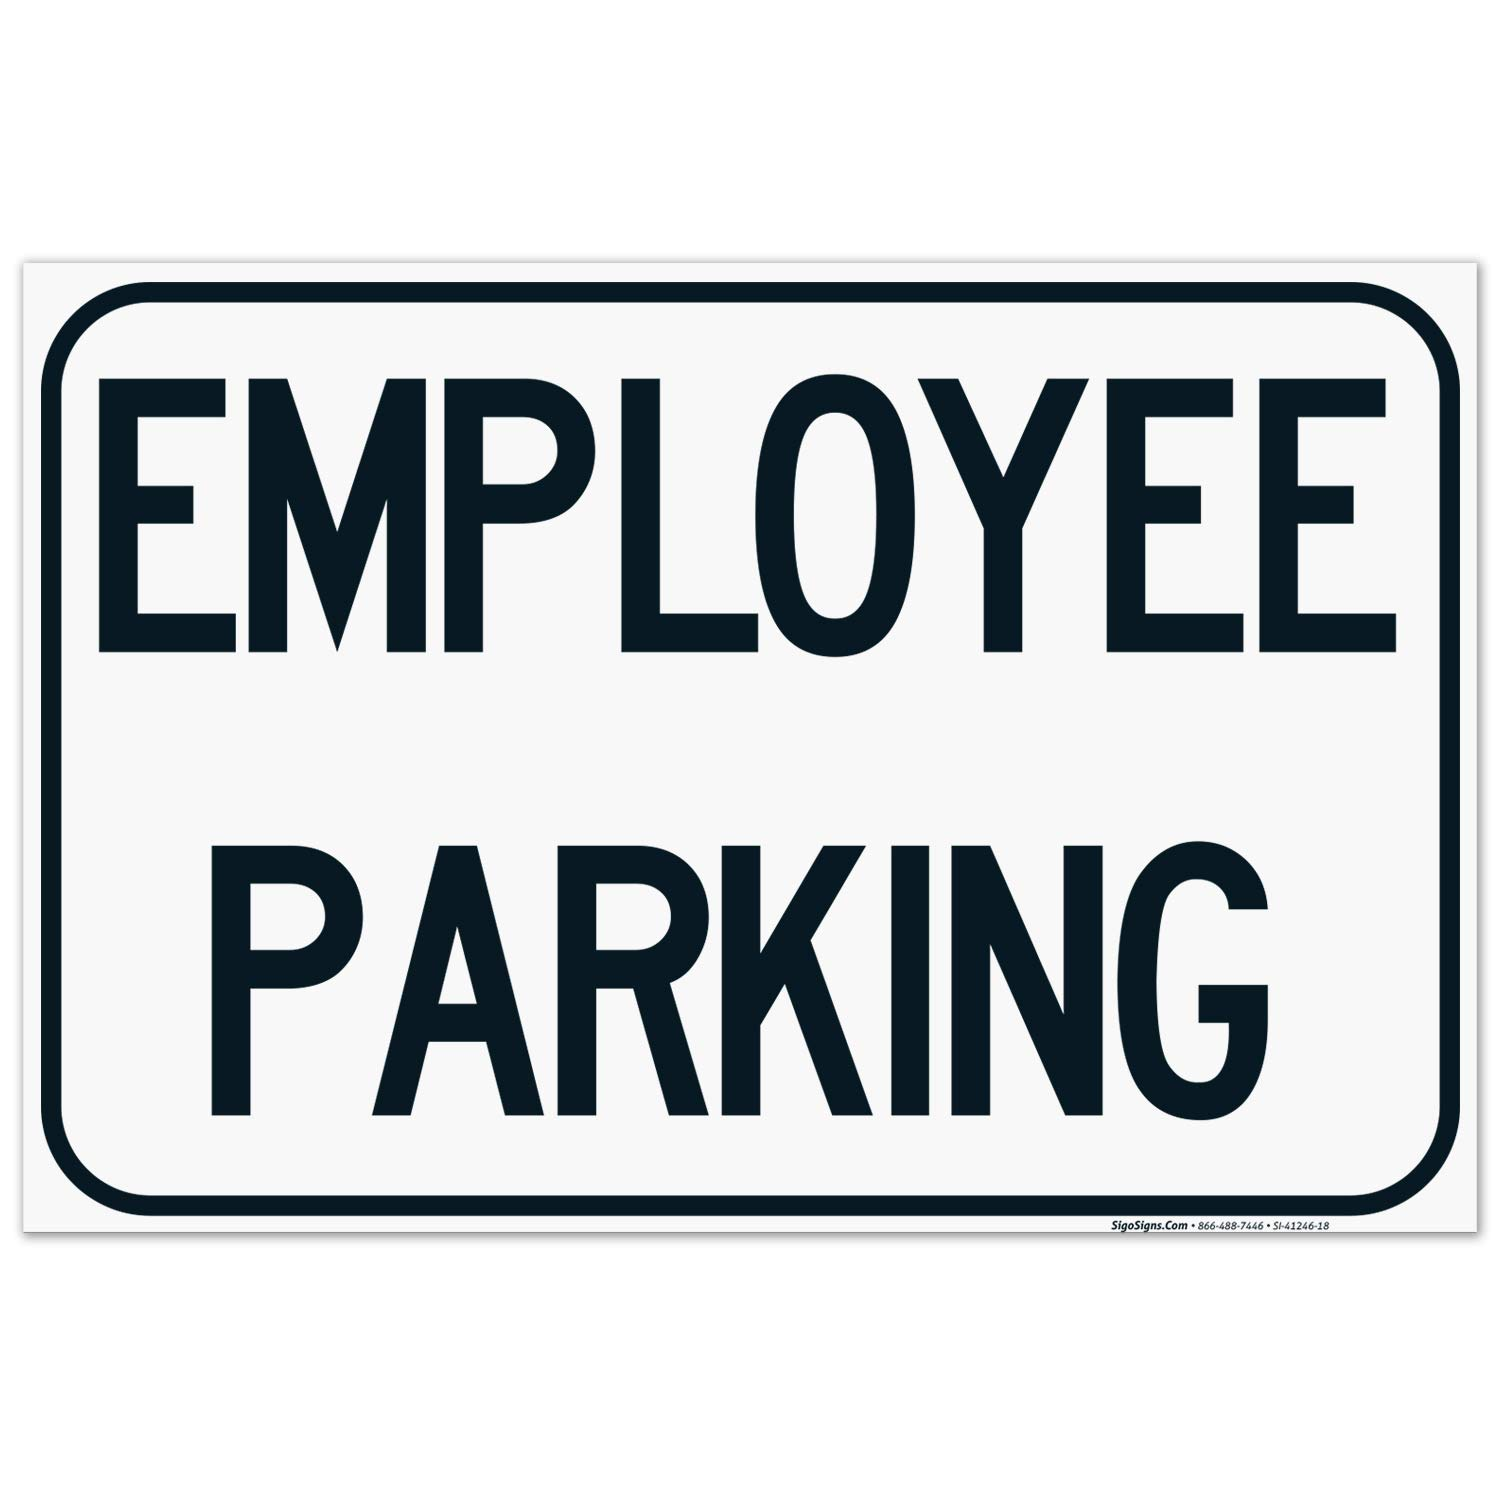 Employee Parking Sign 24x36 Inches Max 70% OFF Mil Corrugated Pl Now on sale Thick 160